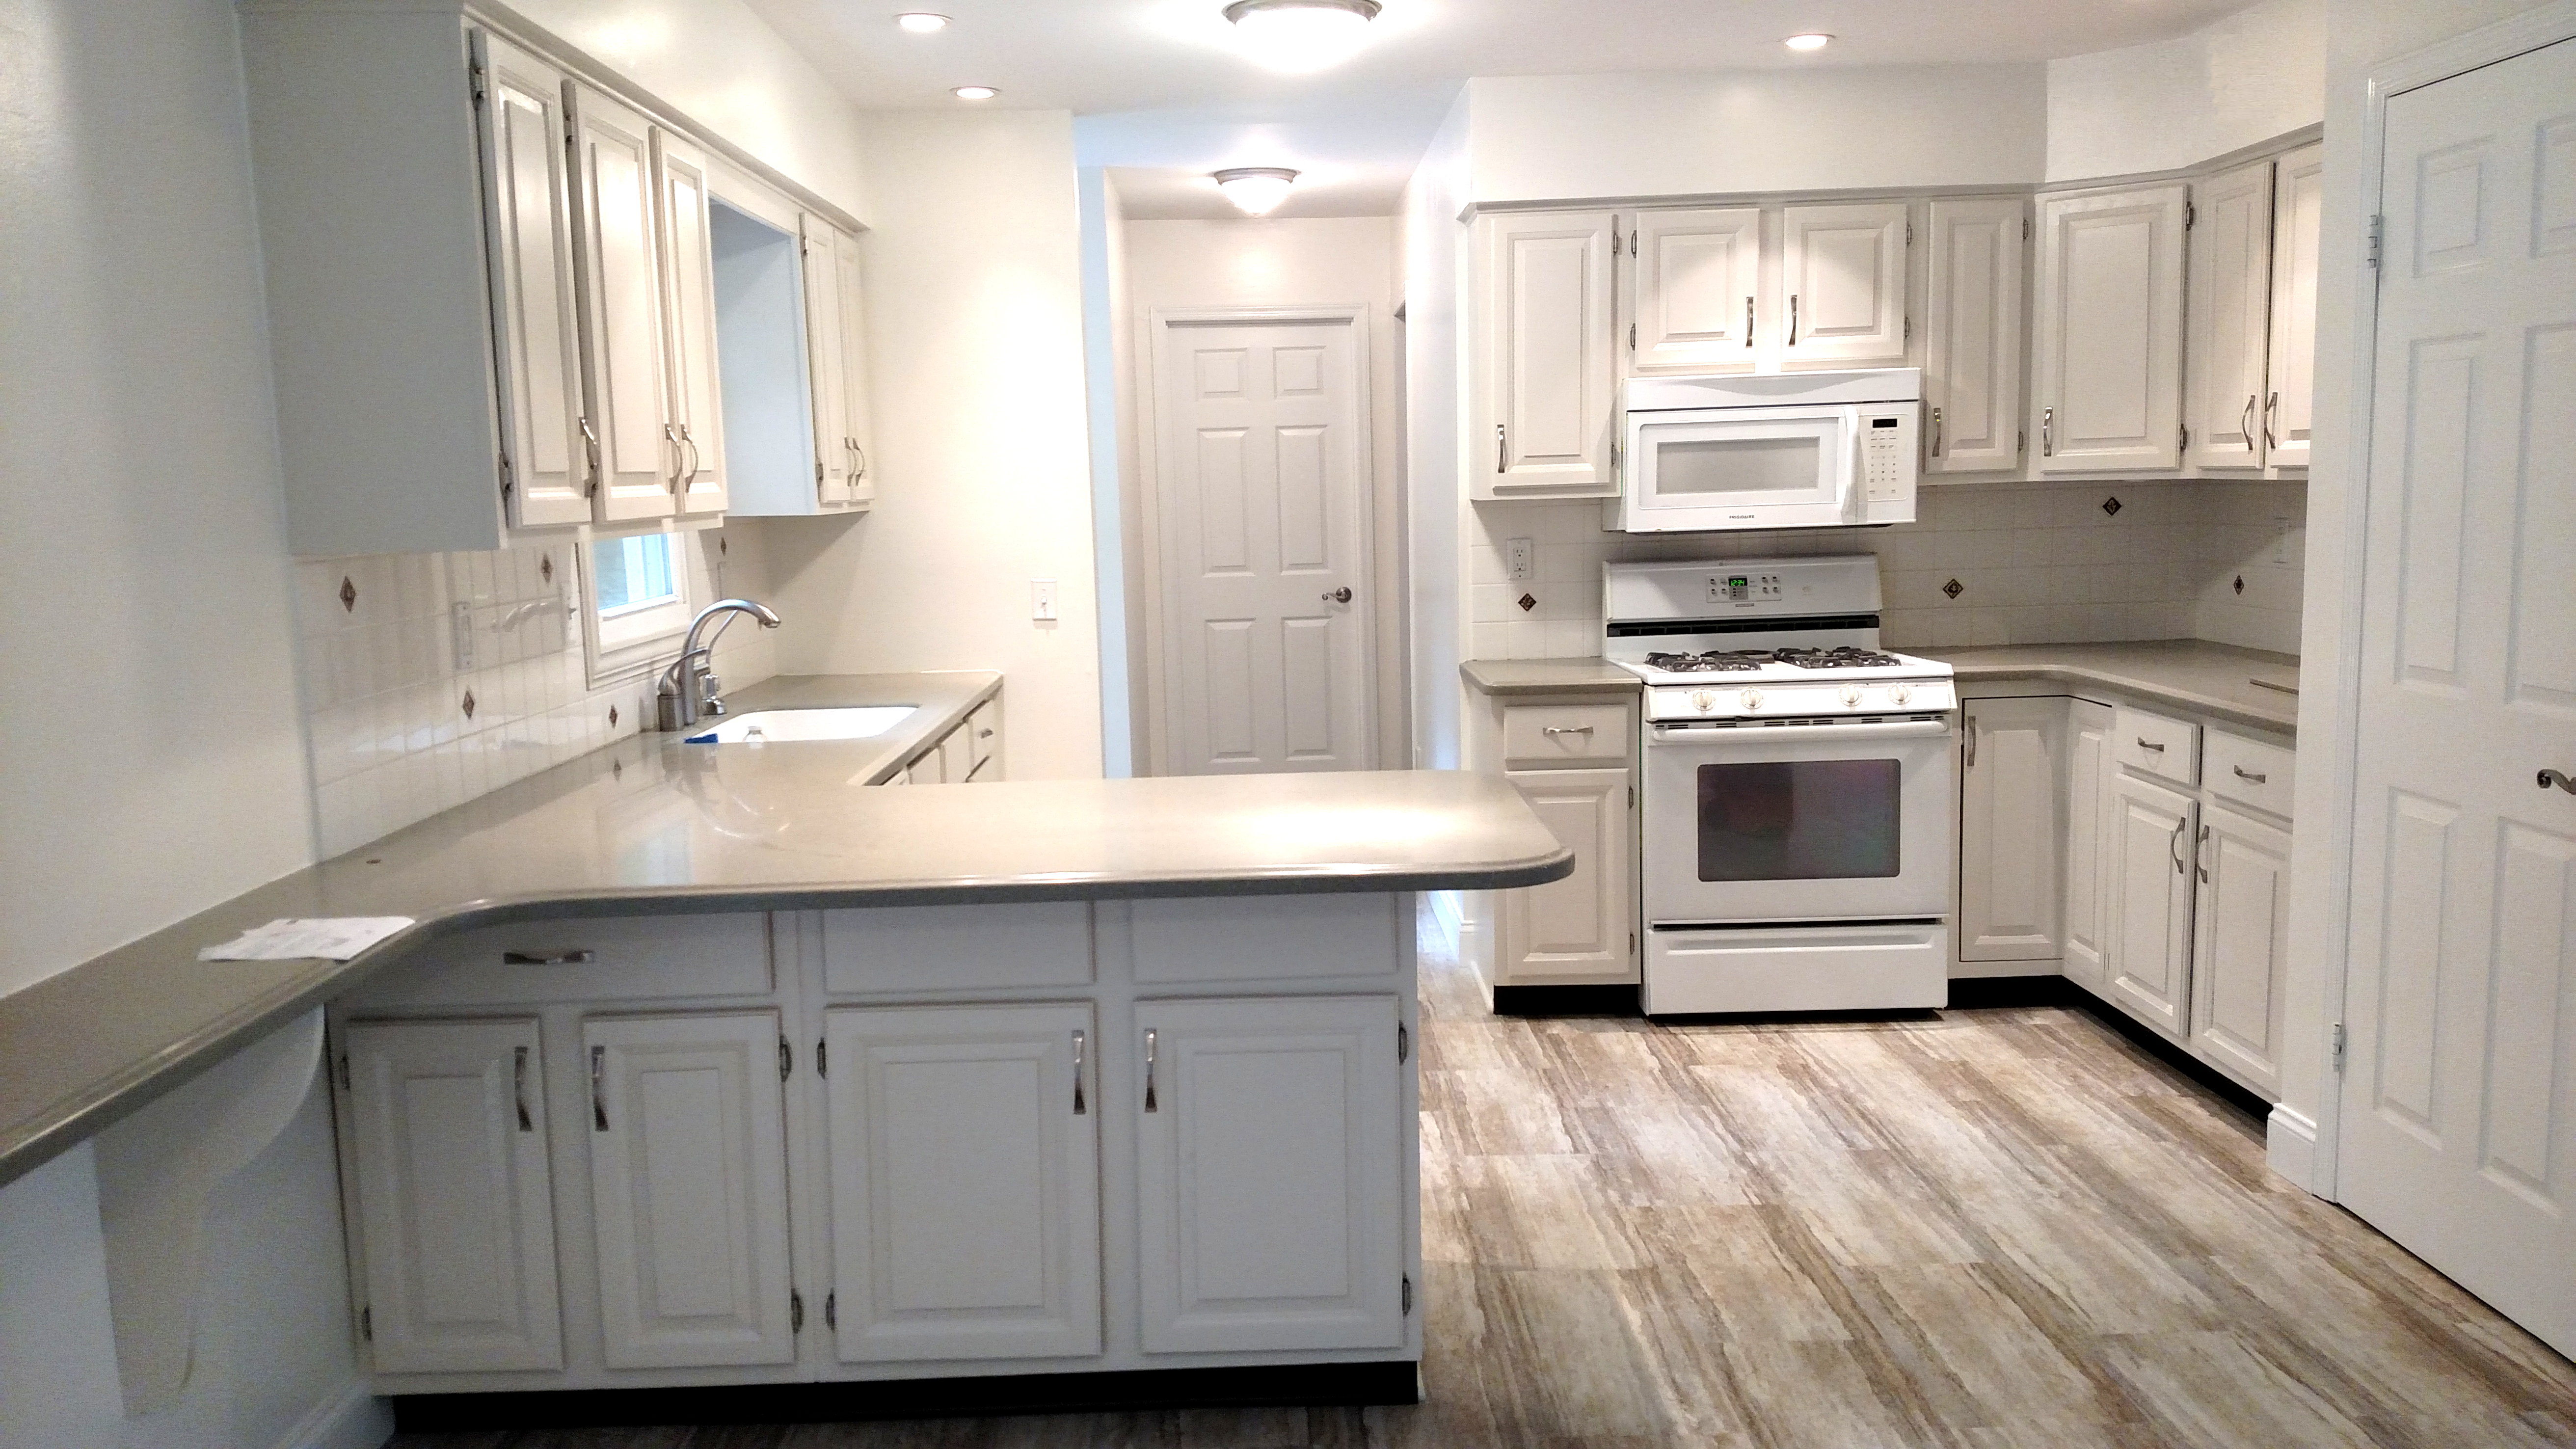 kitchen cabinets refinishing project before and after. Black Bedroom Furniture Sets. Home Design Ideas